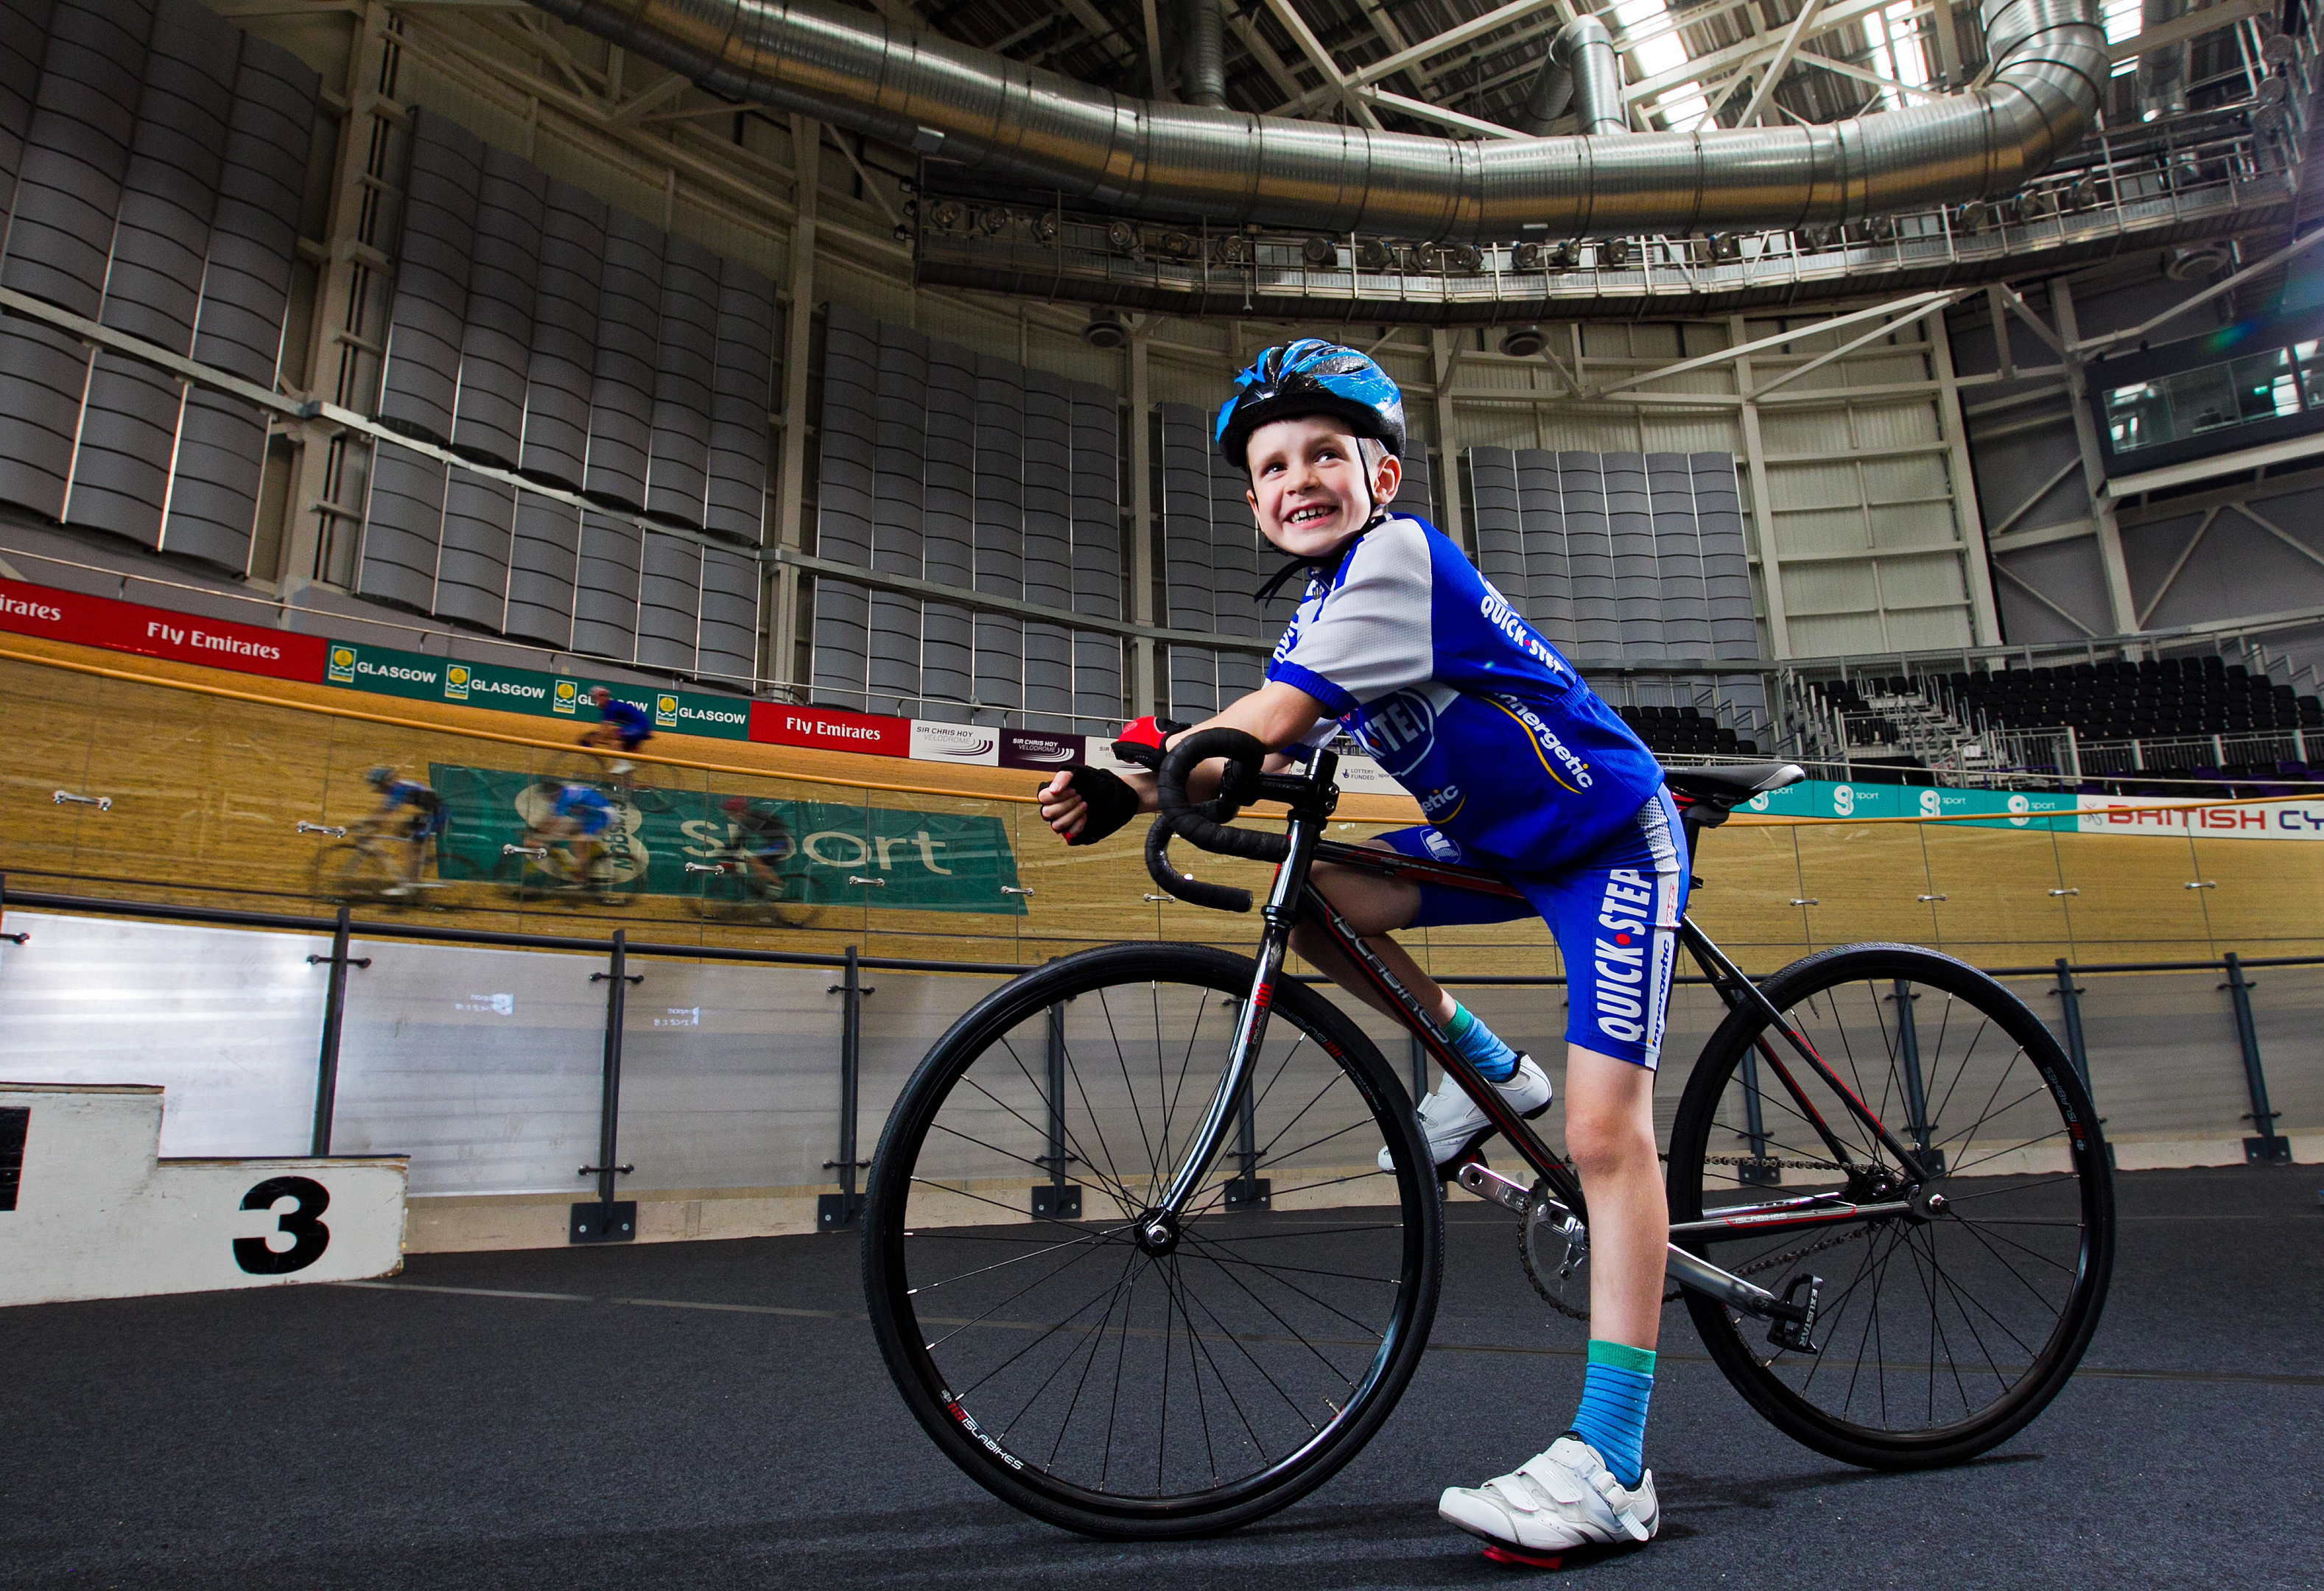 Fraser Anderson, who is a keen cyclist, and has been inspired by the Rio Olympics (Andrew Cawley/DC Thomson)